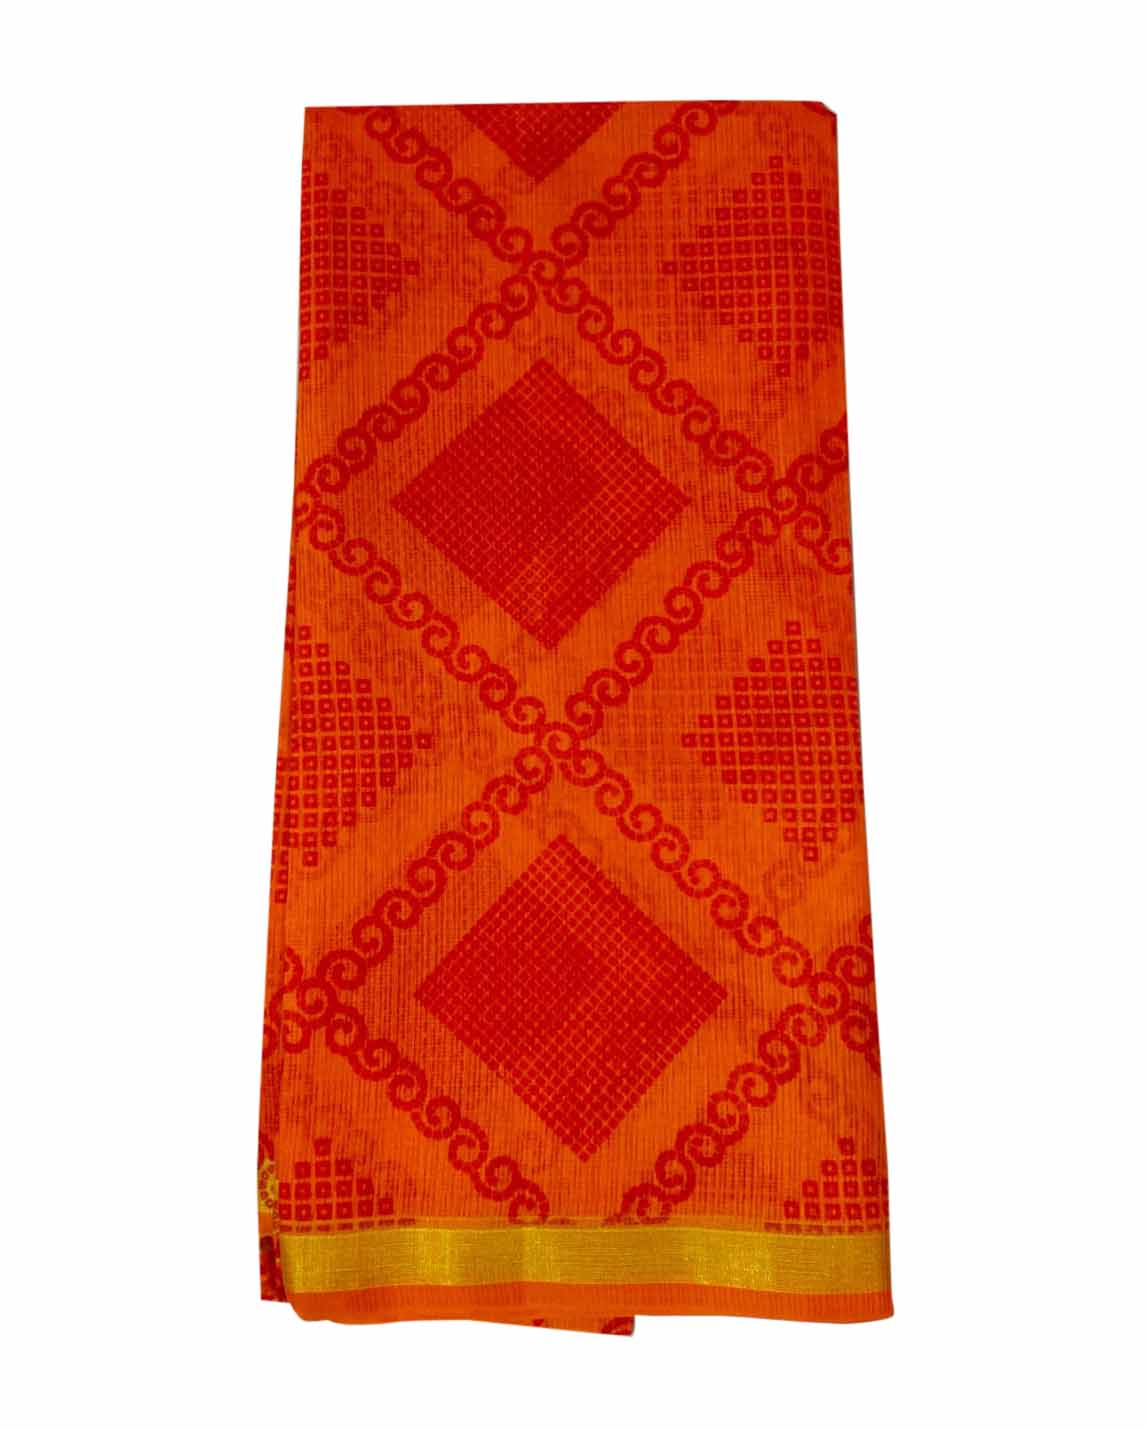 WOMEN SYNTHETIC DORIYA SAREE WITH BLOUSE-ORANGE-DF JULY SUMMER COOL 05